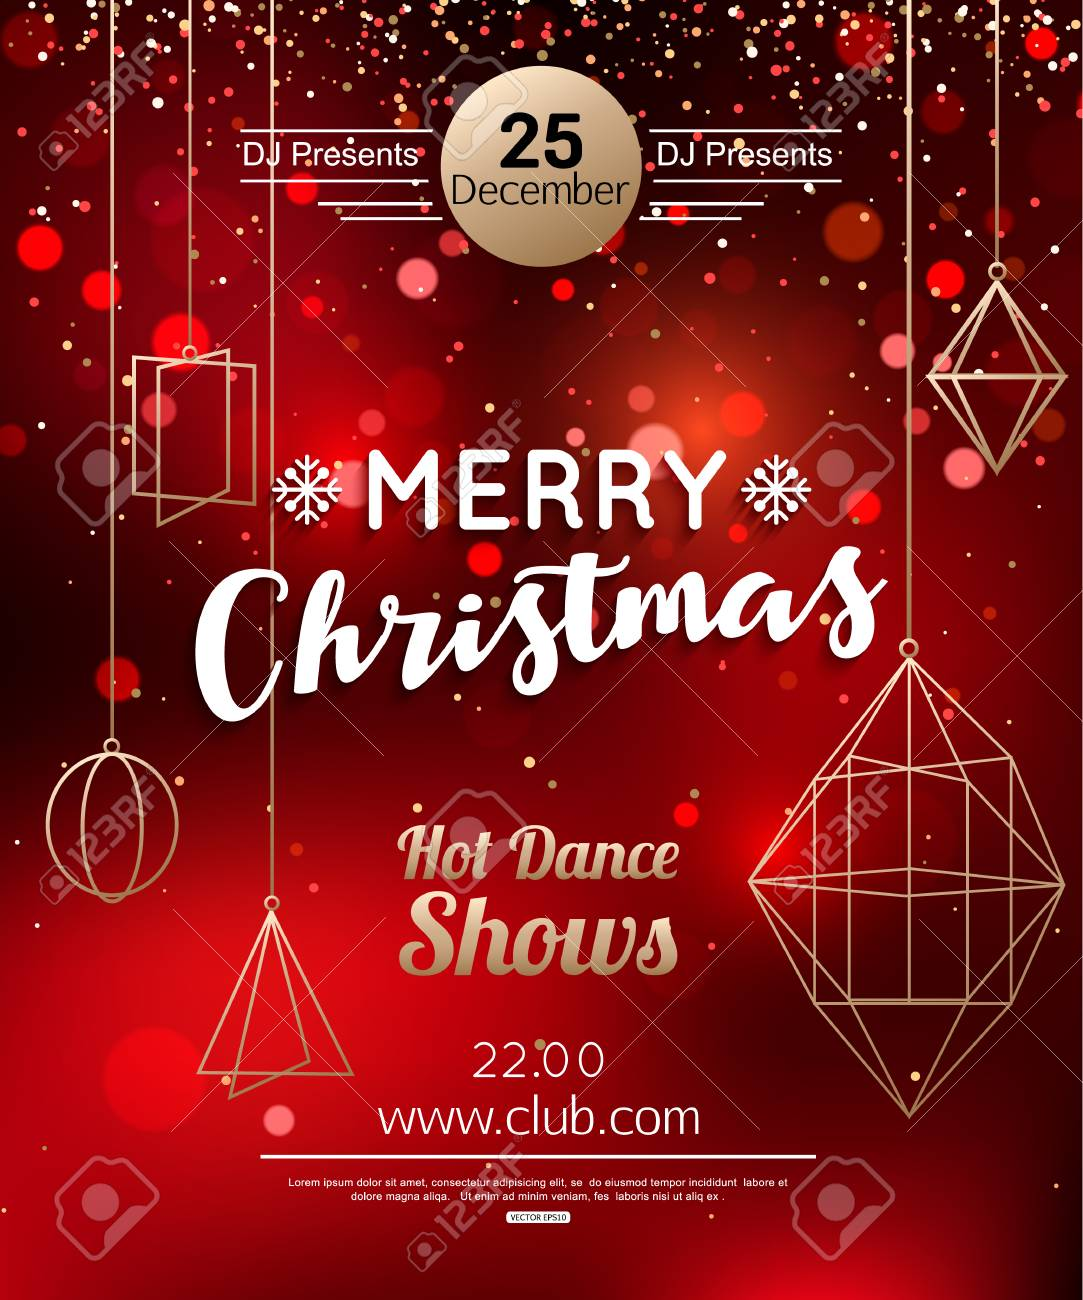 Christmas Party Flyer.Christmas Party Flyer Or Poster Design Template